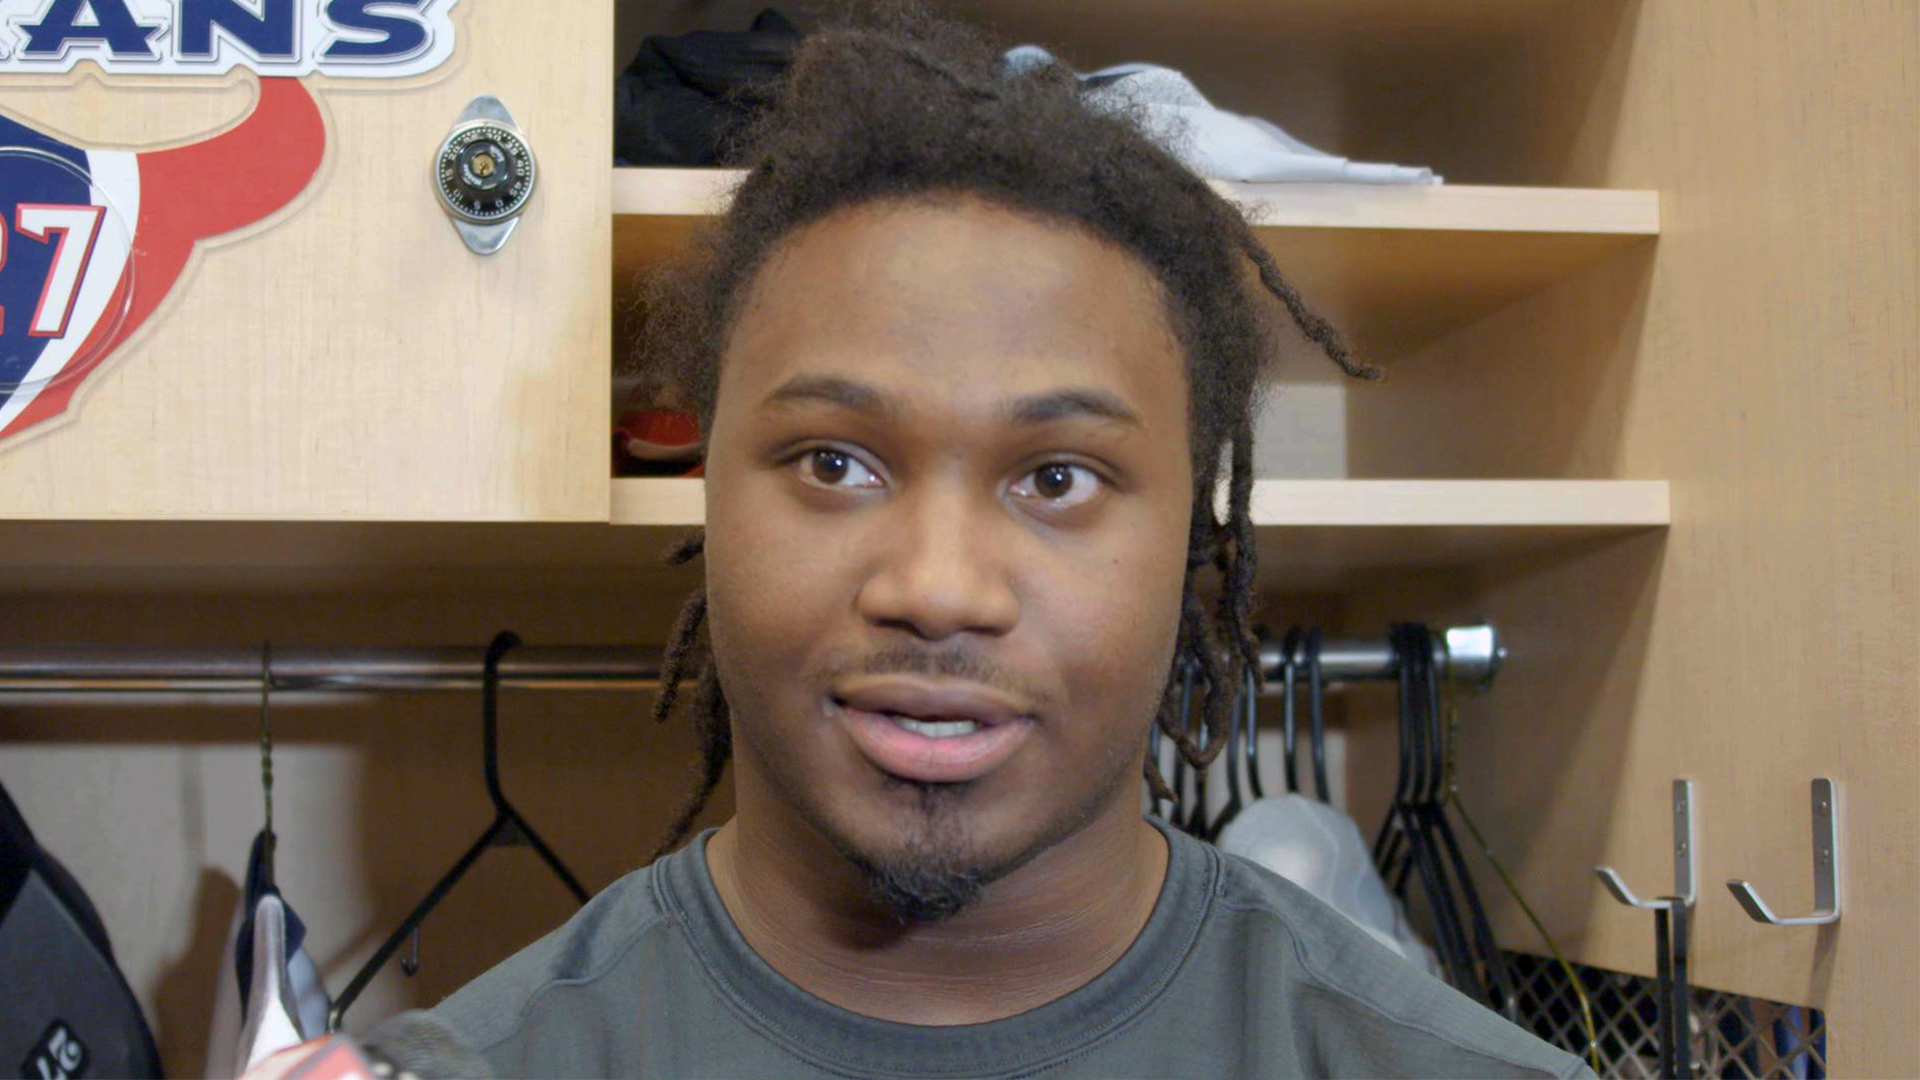 #Texans RB D'Onta Foreman is looking forward to an increased role on Thursday night.  ��: https://t.co/kCG87GHnp3 https://t.co/4TuW7FPPHX